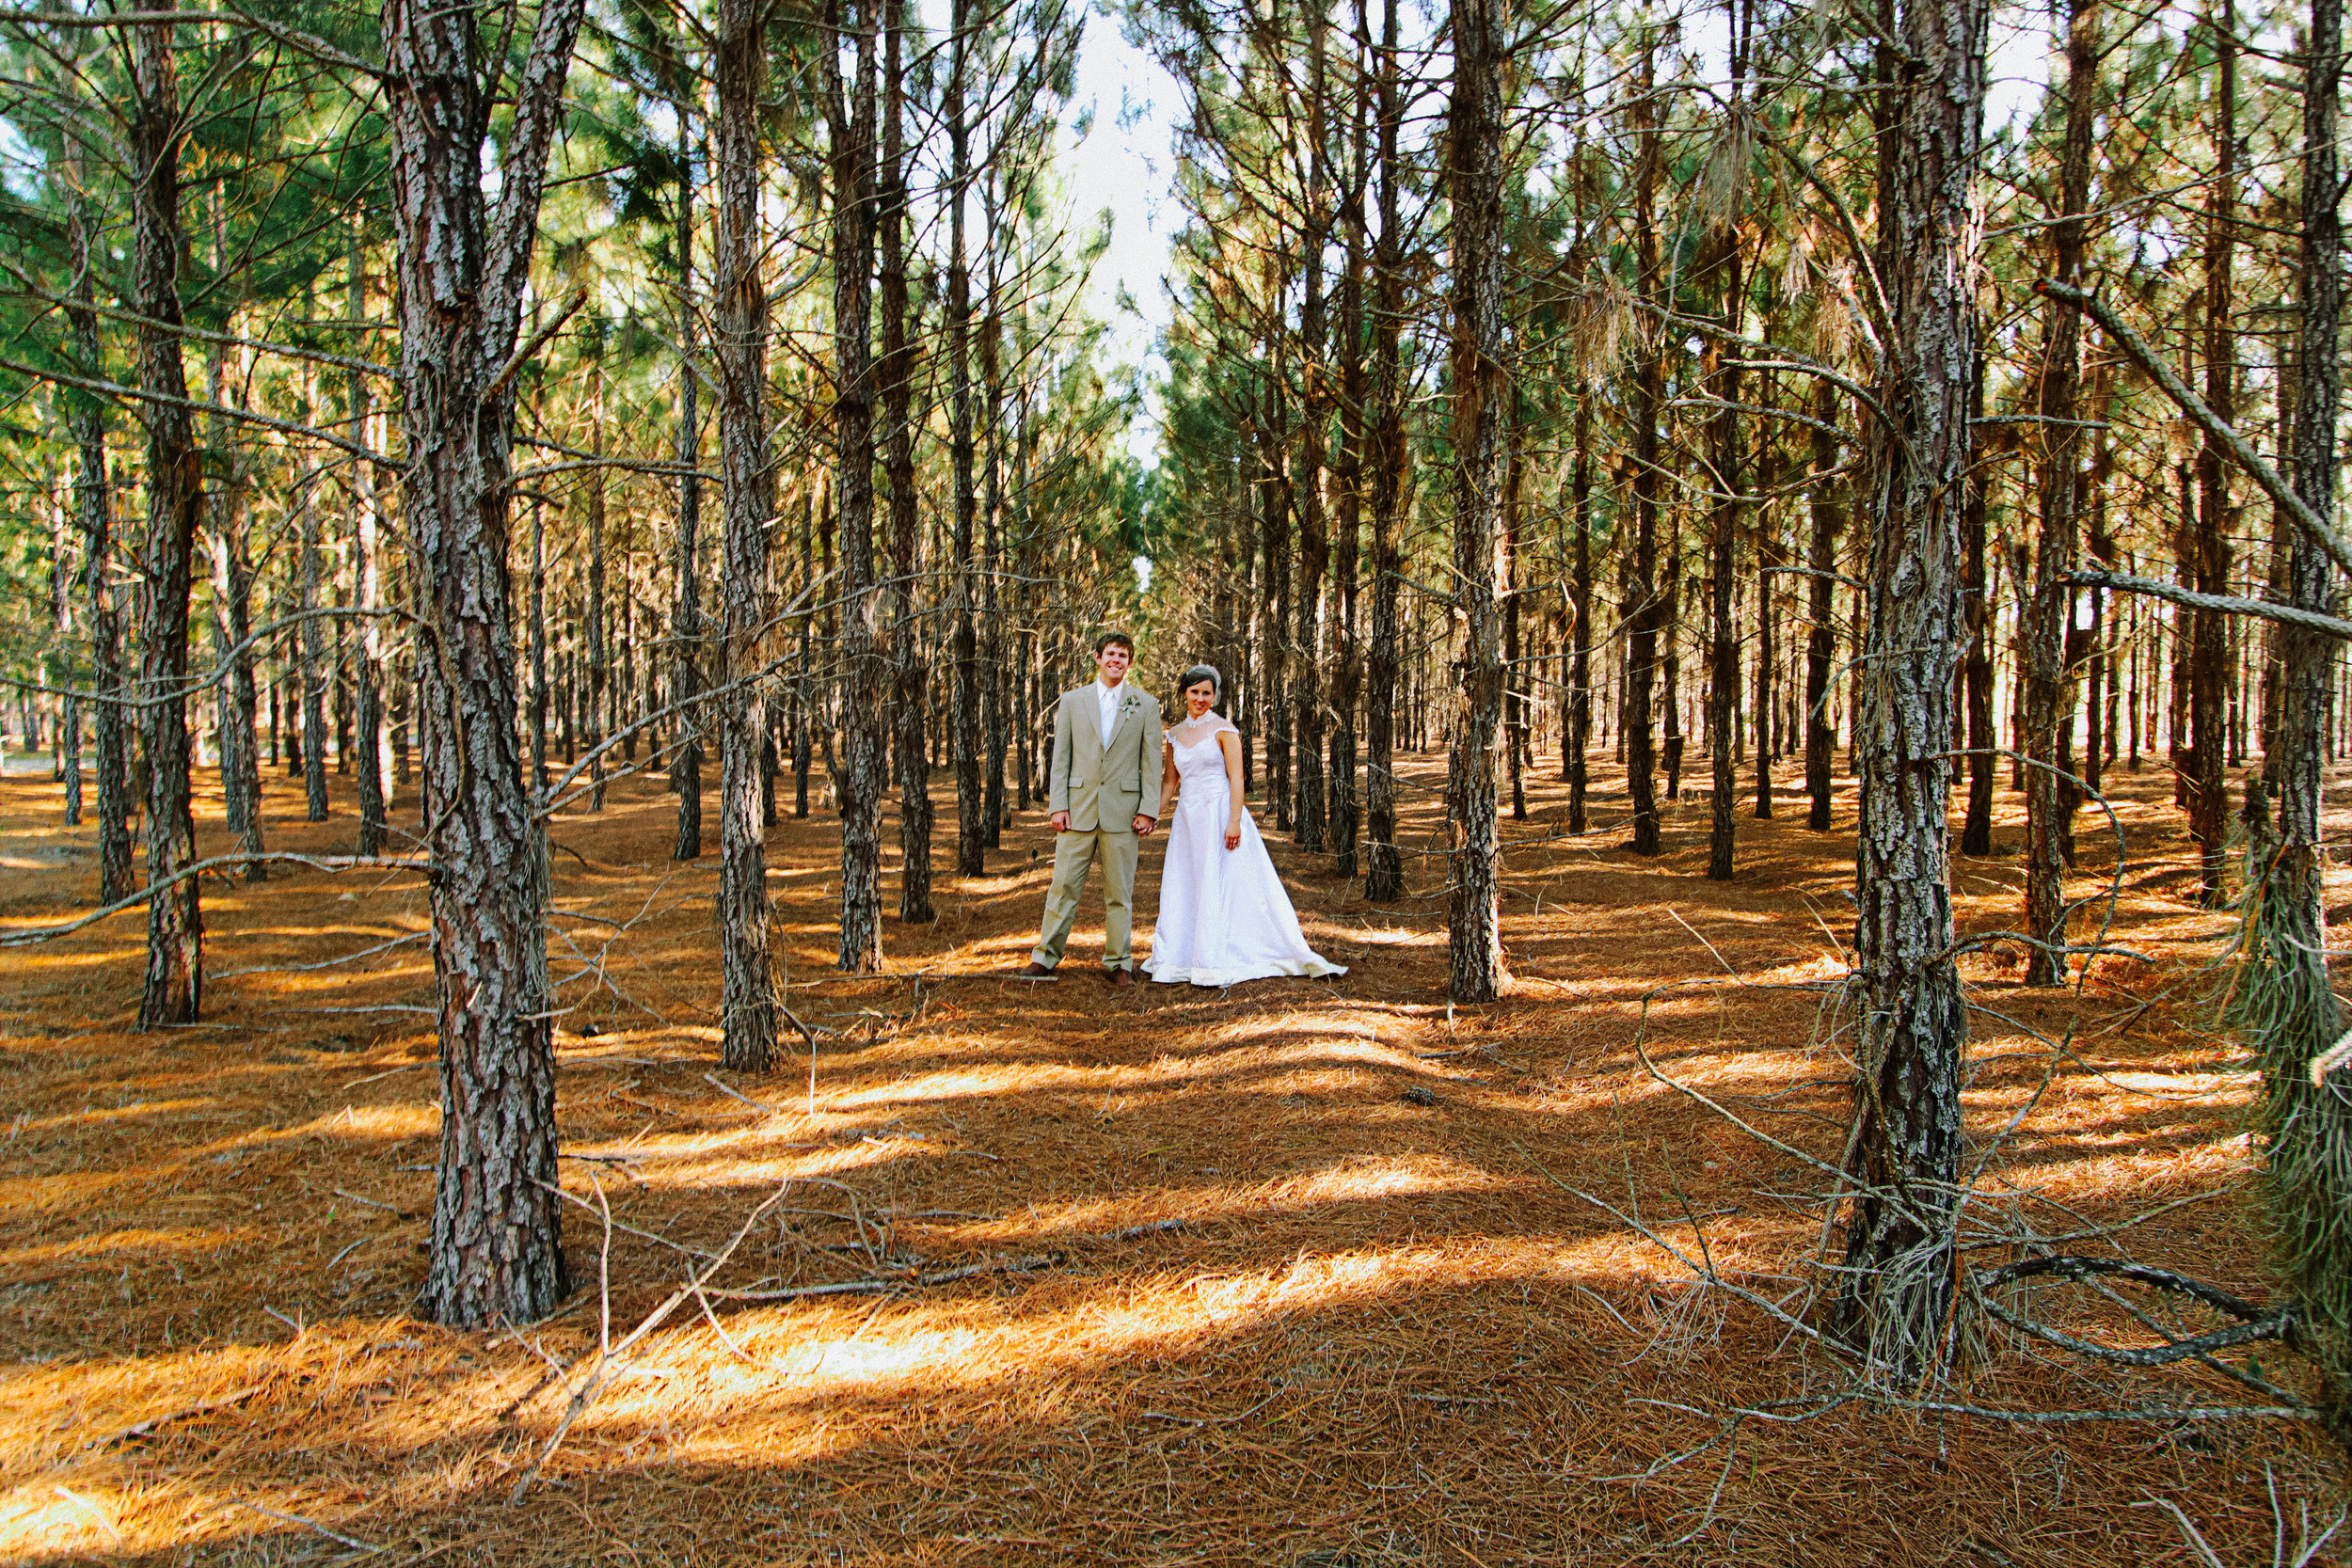 Weaver Wedding | Ocala, FL | Hannahill Photography